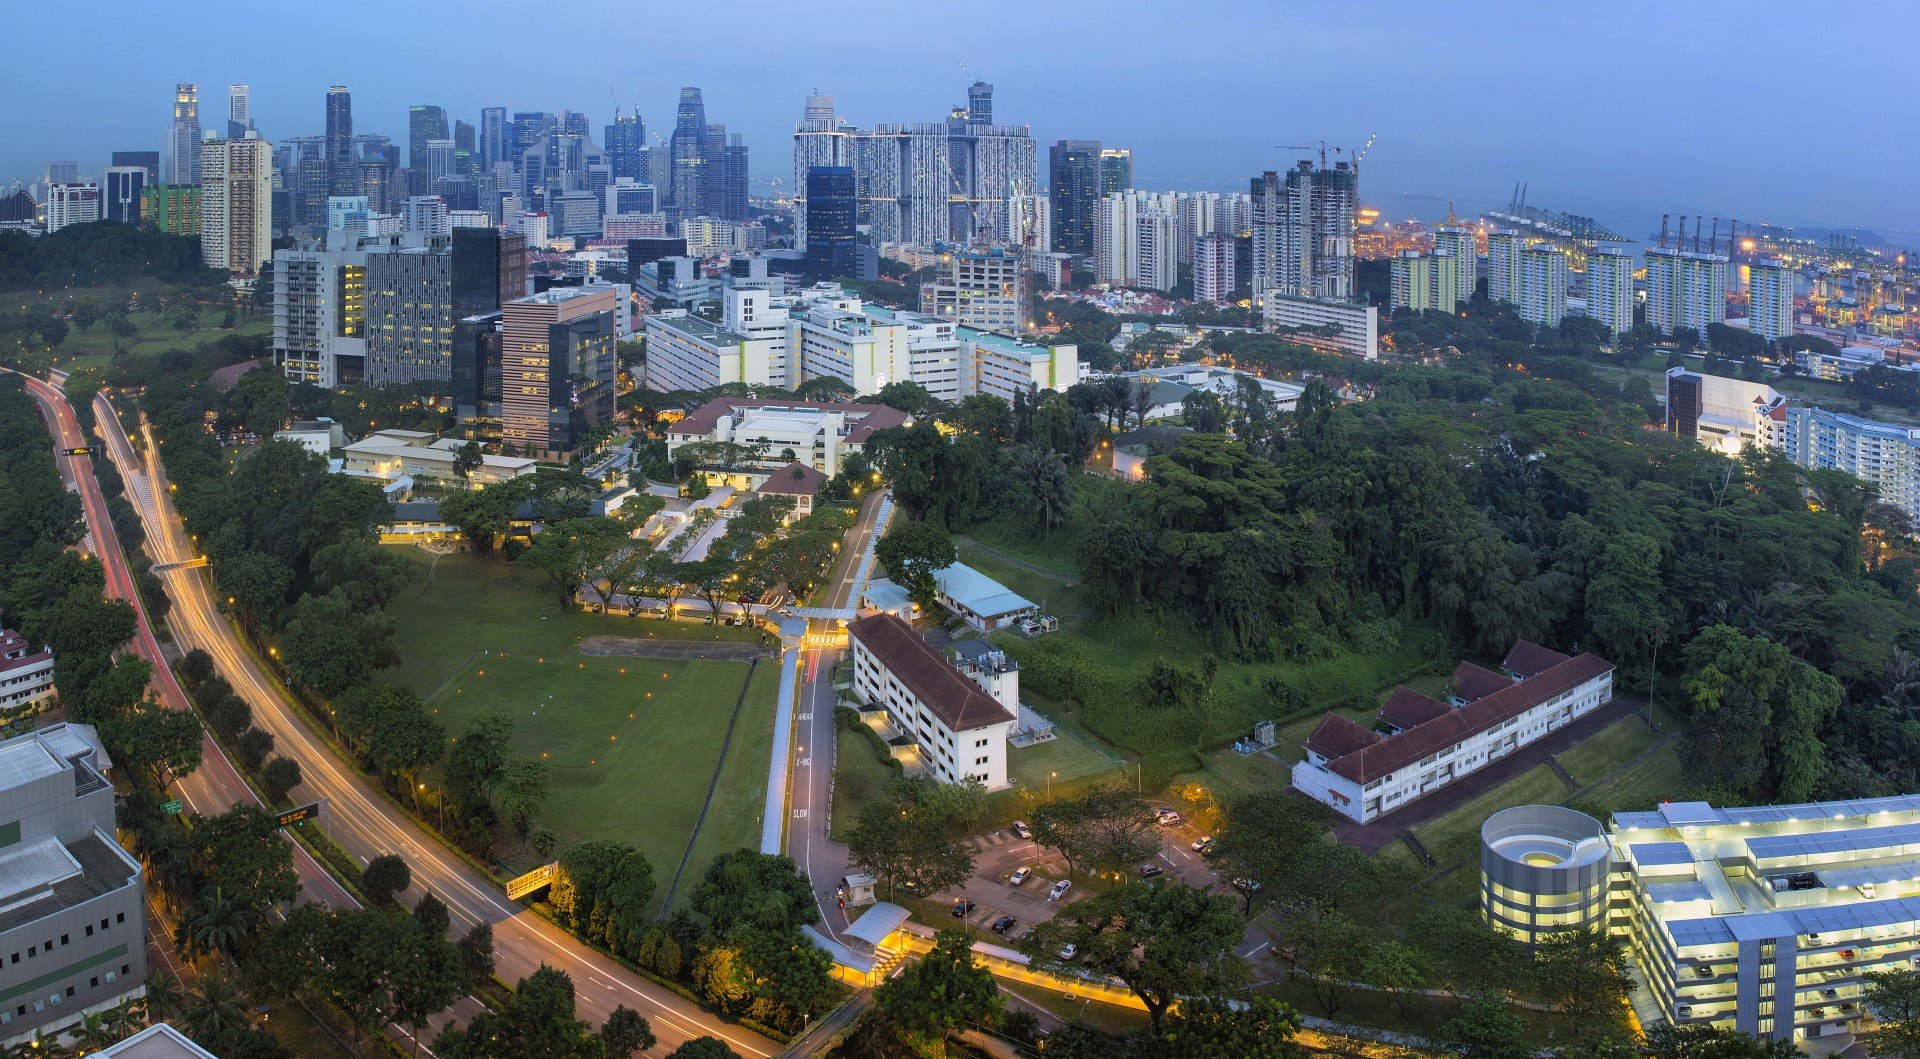 Singapore's luxury penthouse deals fuelled by Chinese buyers | South